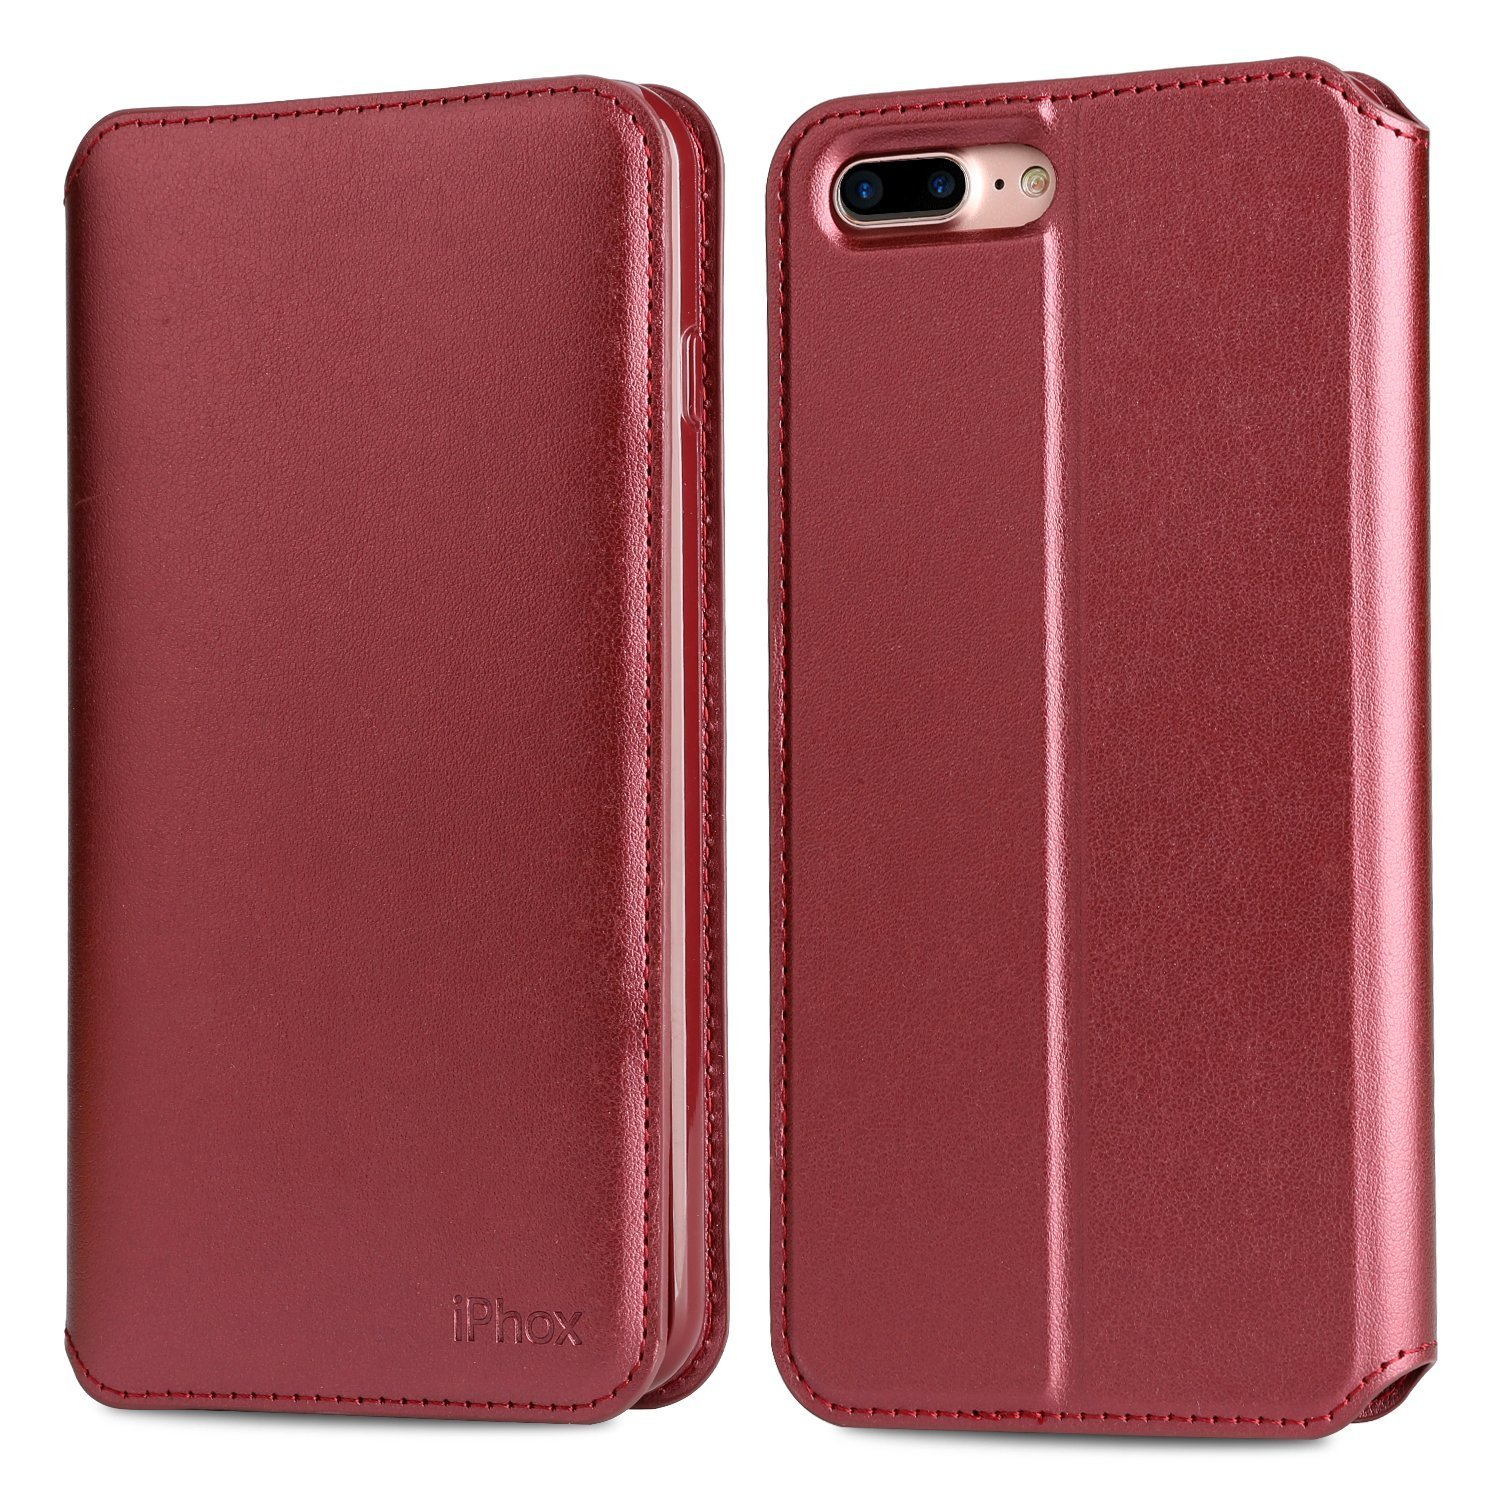 iPhone 8 Plus/7 Plus Leather Case, IPHOX Folio Leather Wallet Case Wireless Charging with [Kickstand] [Card Slots] [Magnetic Closure] Flip Notebook Cover Case for iPhone 7 Plus/8 Plus-CP (Red& BU/C) IPHOX-CP-7Plus-Red/BU